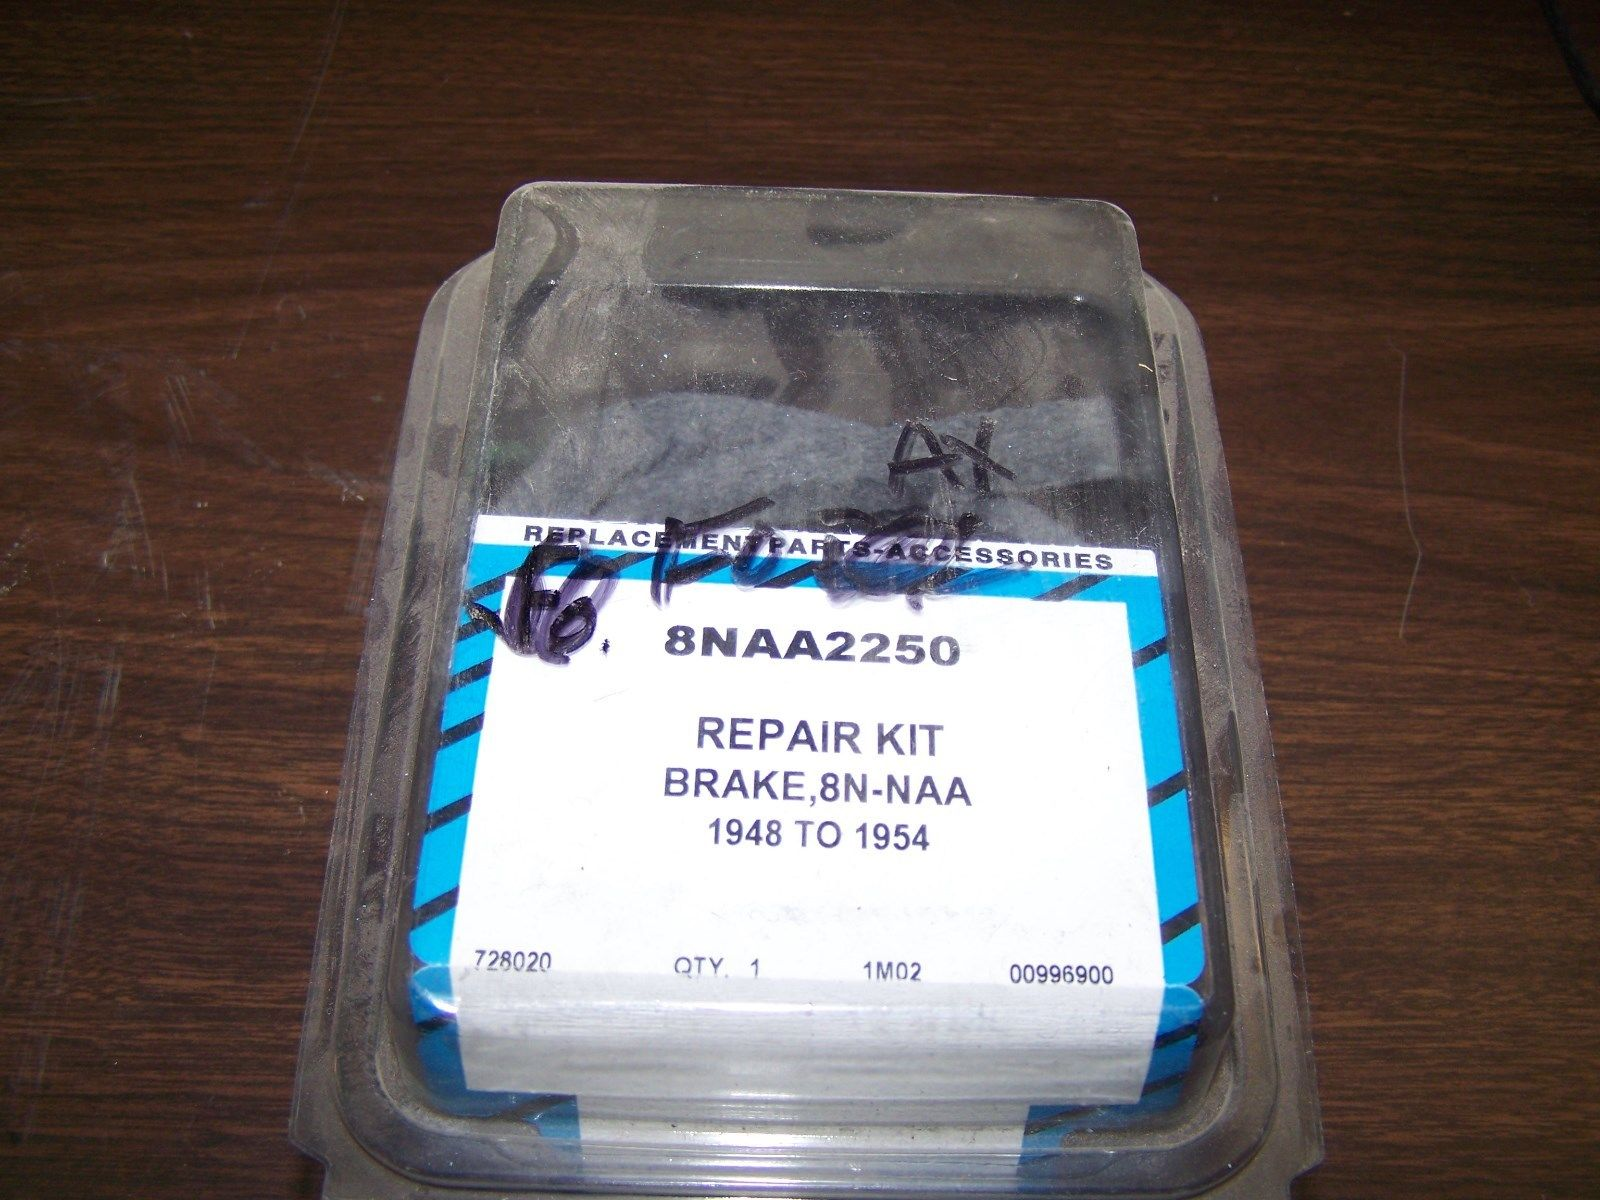 Brake Repair Kit-Ford/New Holland-A-8NAA2250